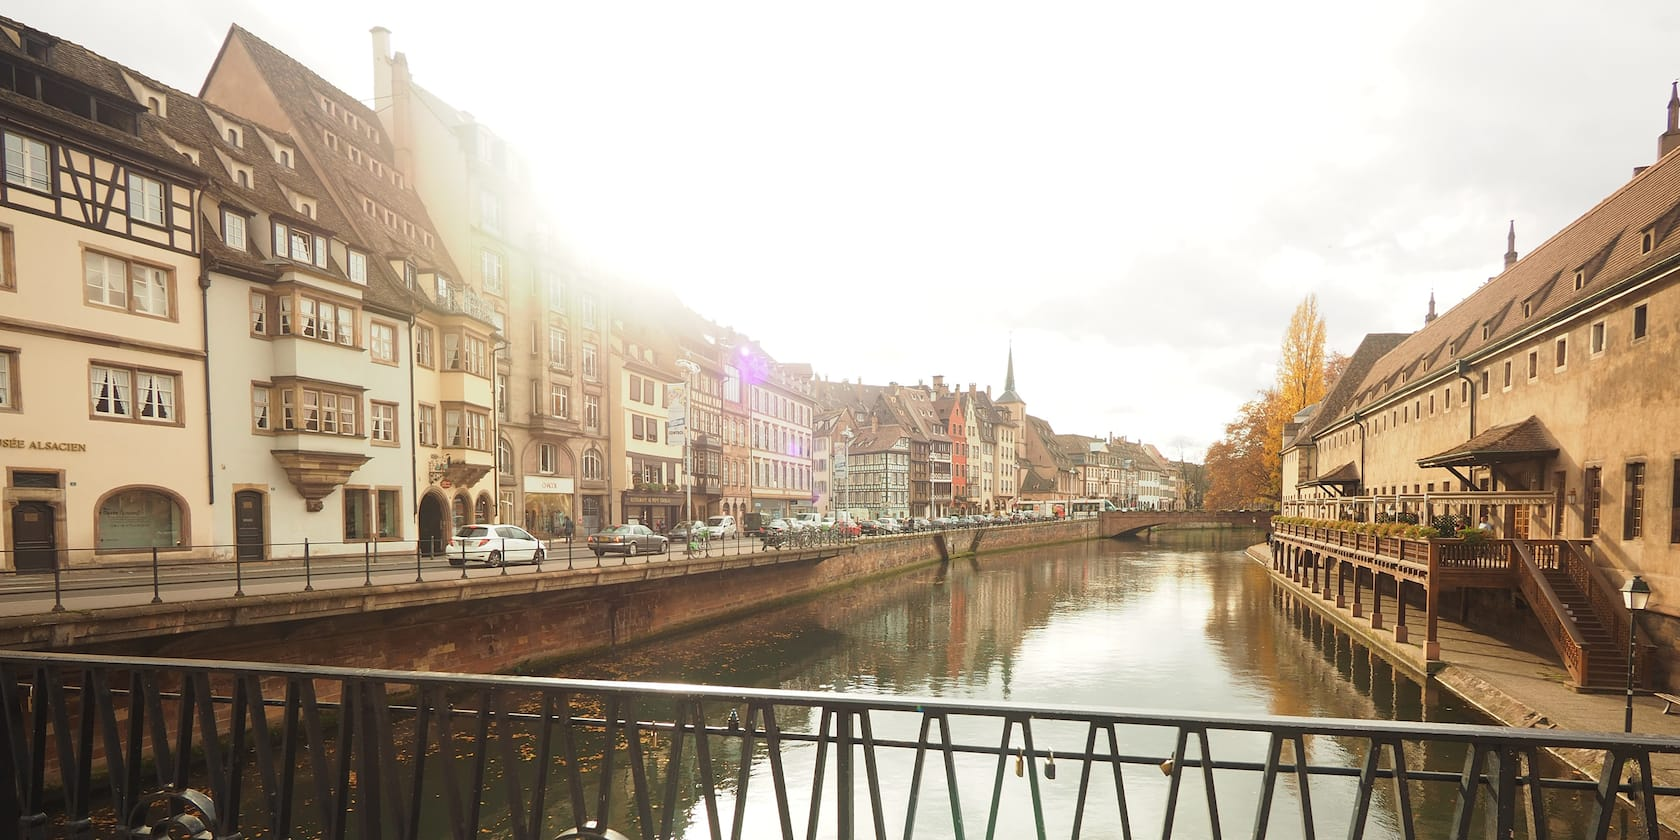 A canal flows through the town of Strasbourg, France